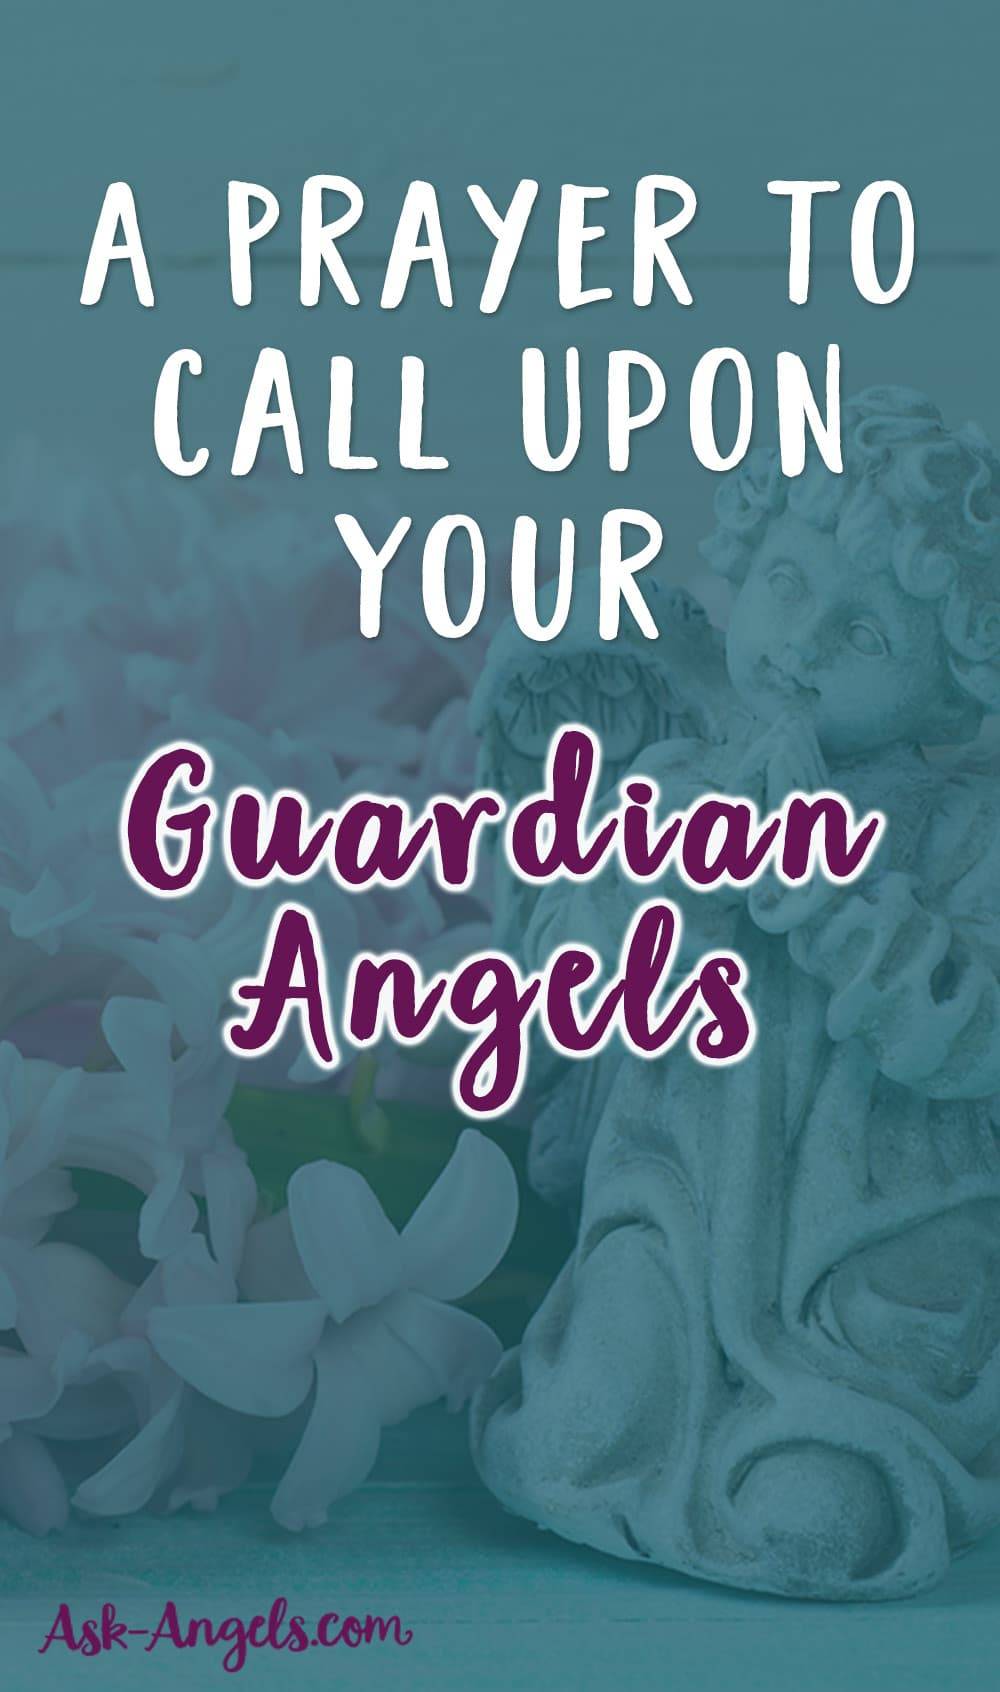 A Prayer to Call Upon Your Guardian Angels